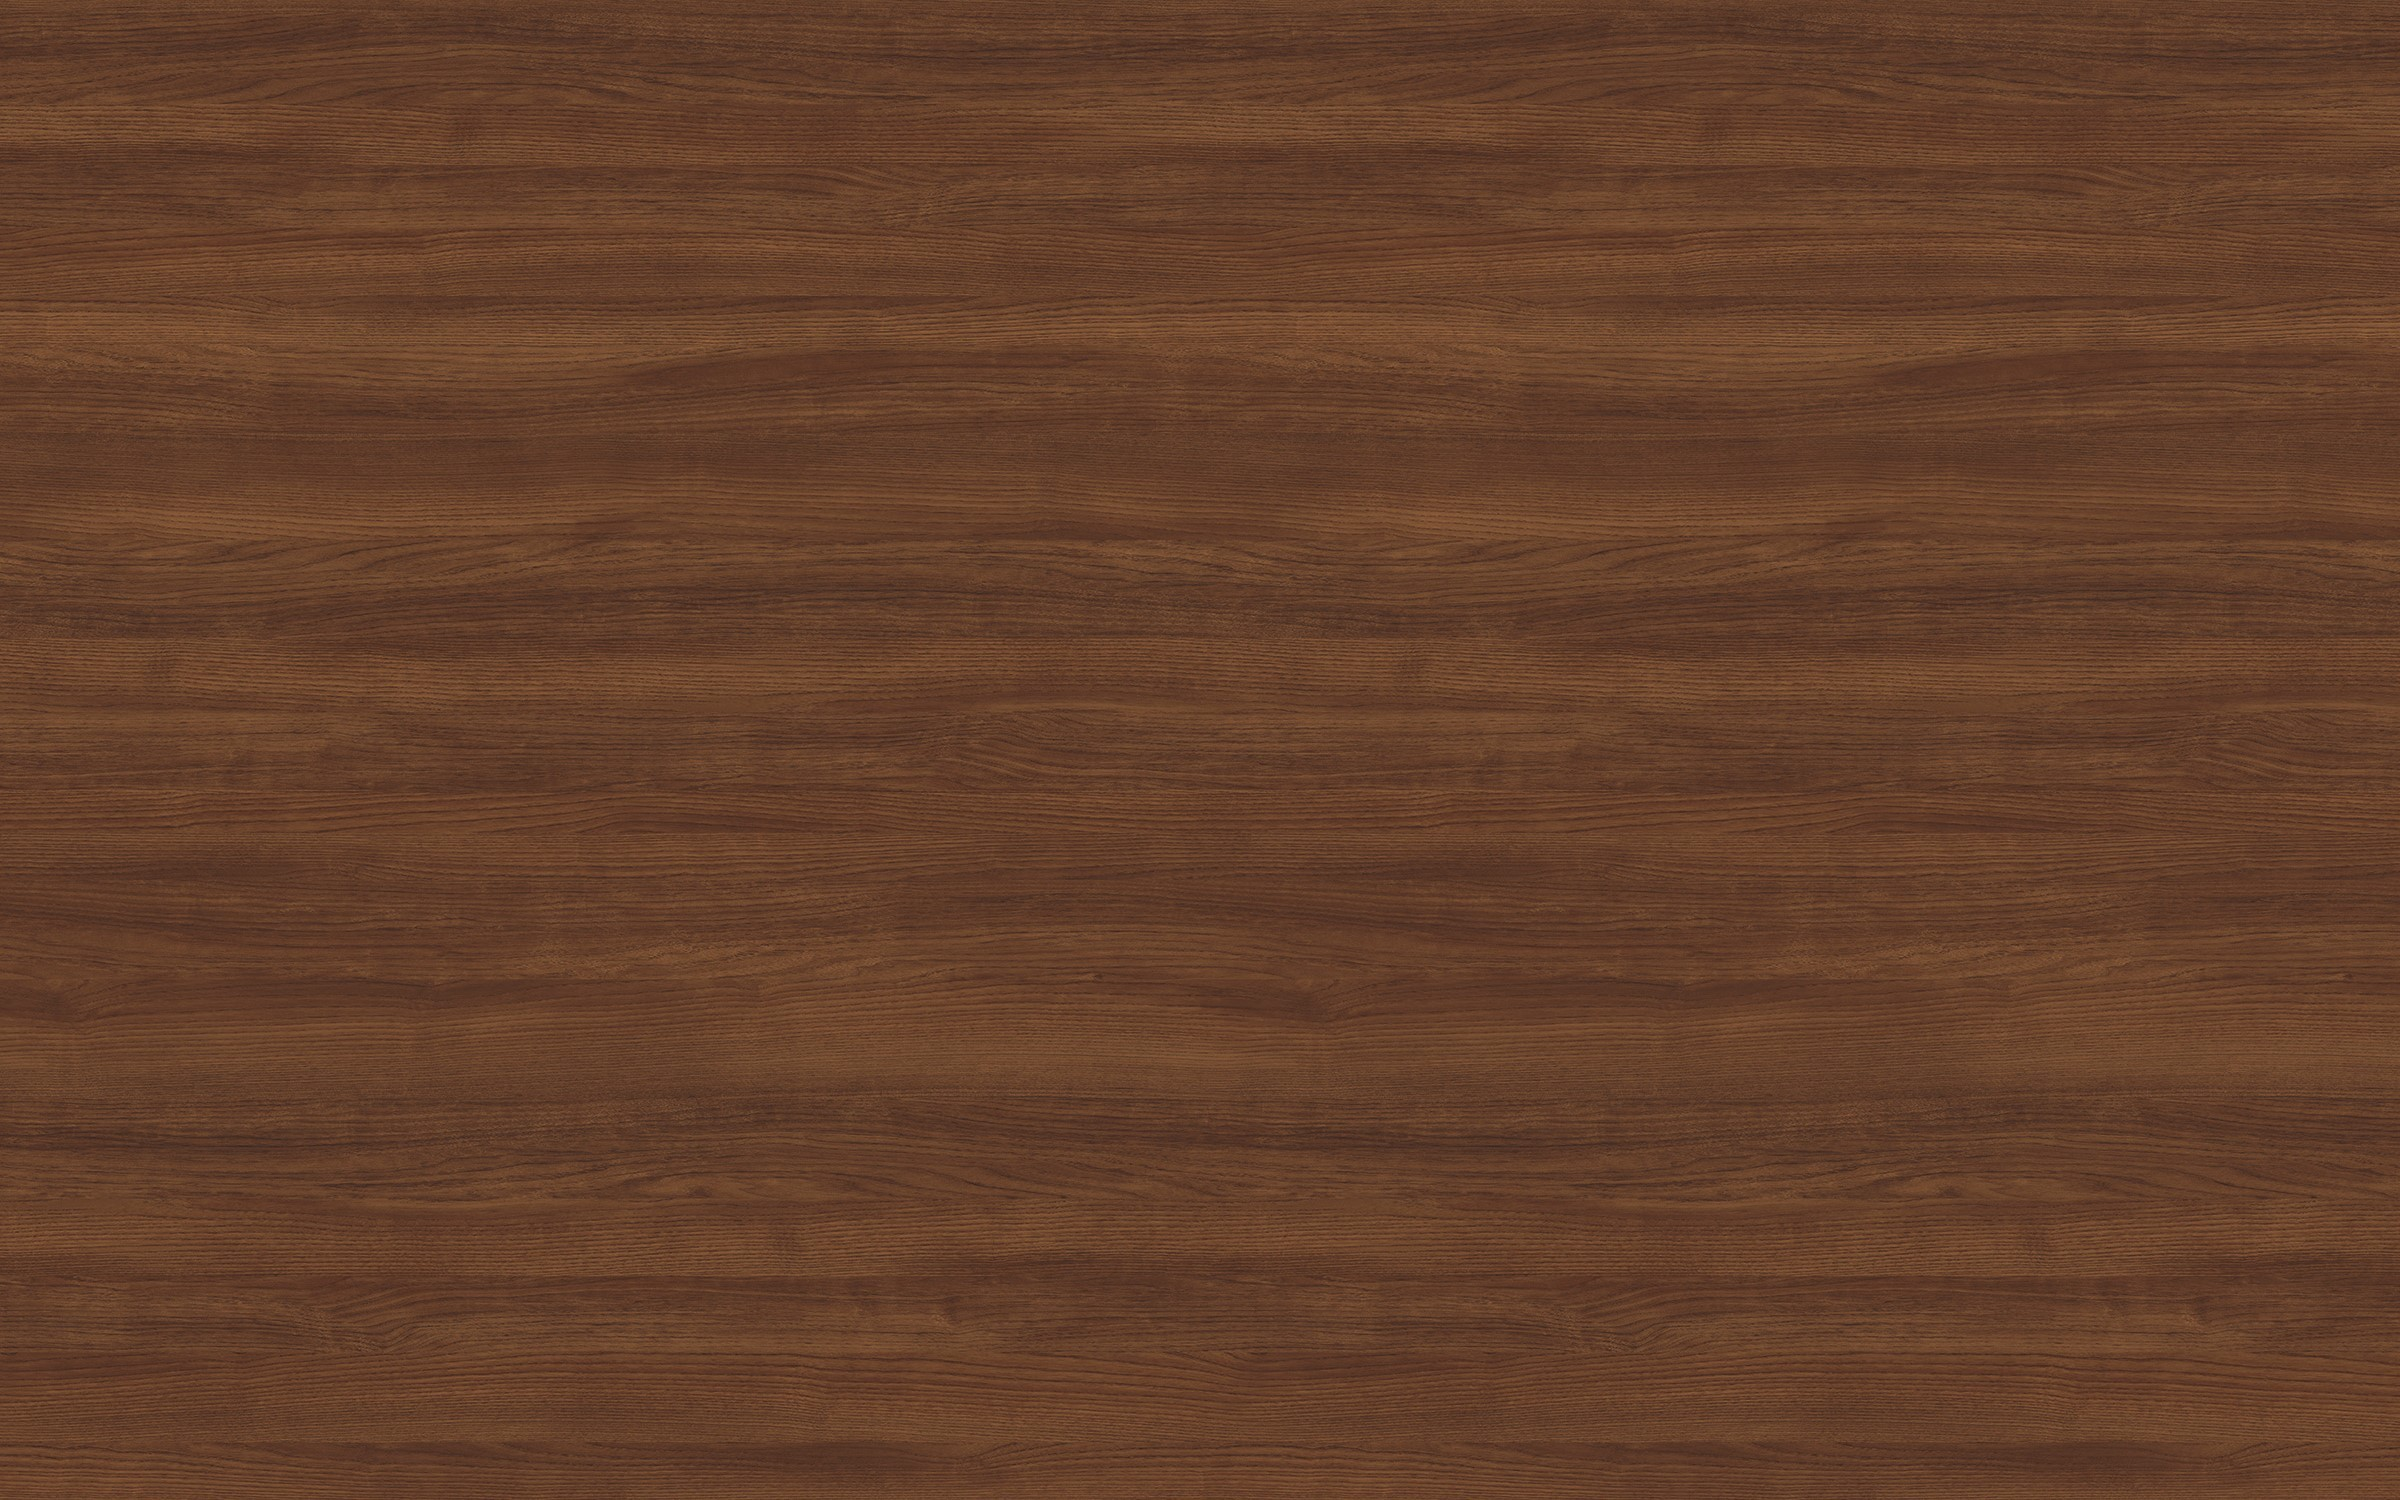 7994 Lowell Ash Laminate Countertops